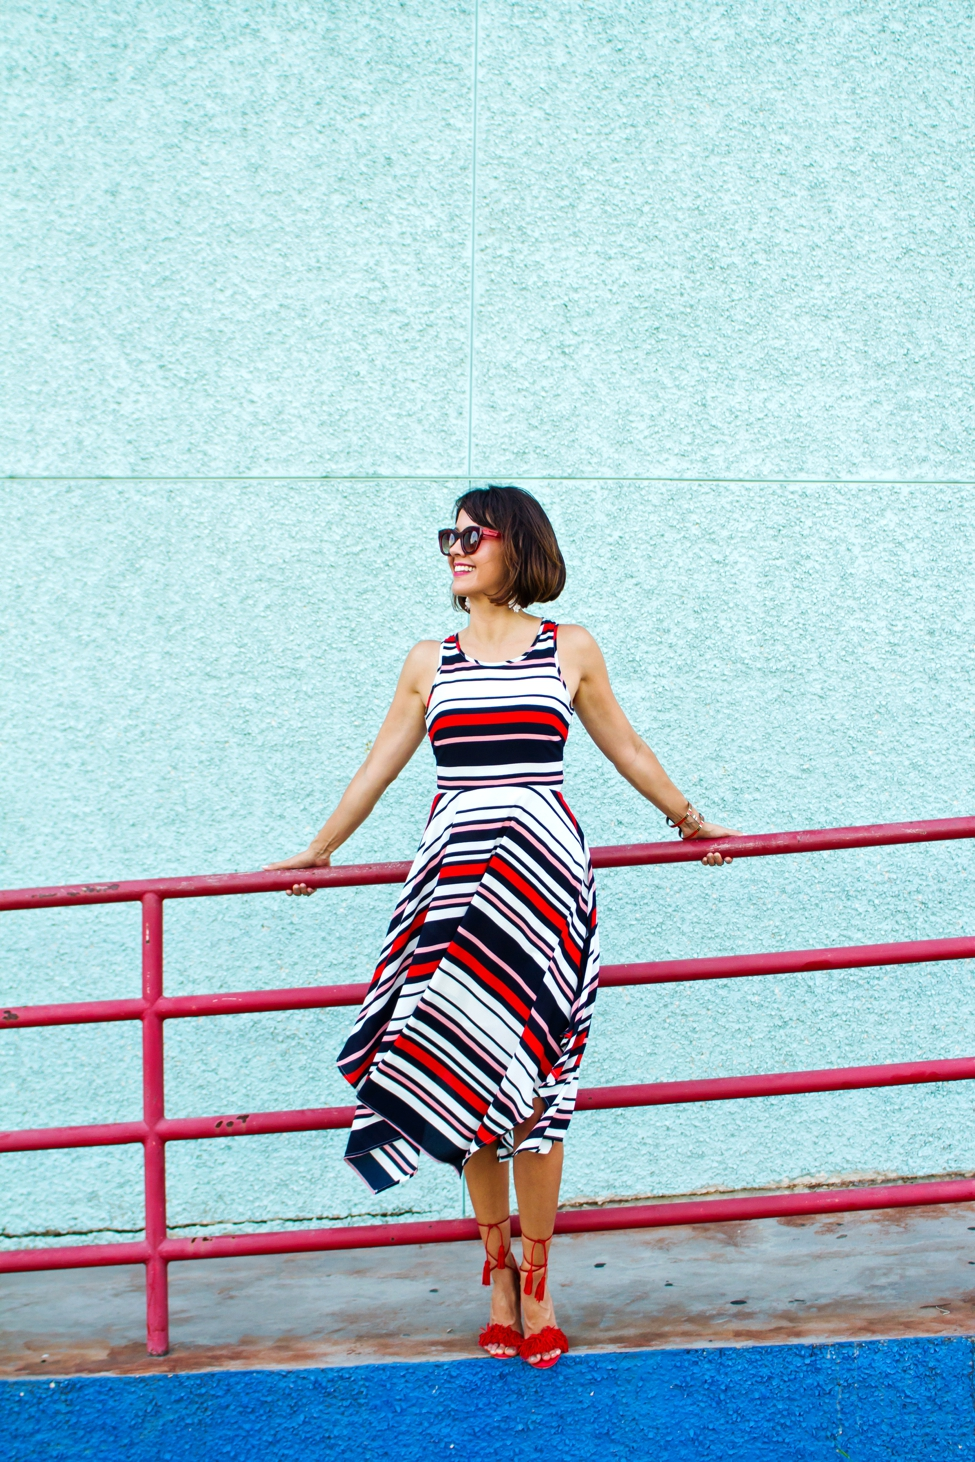 Wear Where Well ModCloth Workwear Red White Blue dress_0010